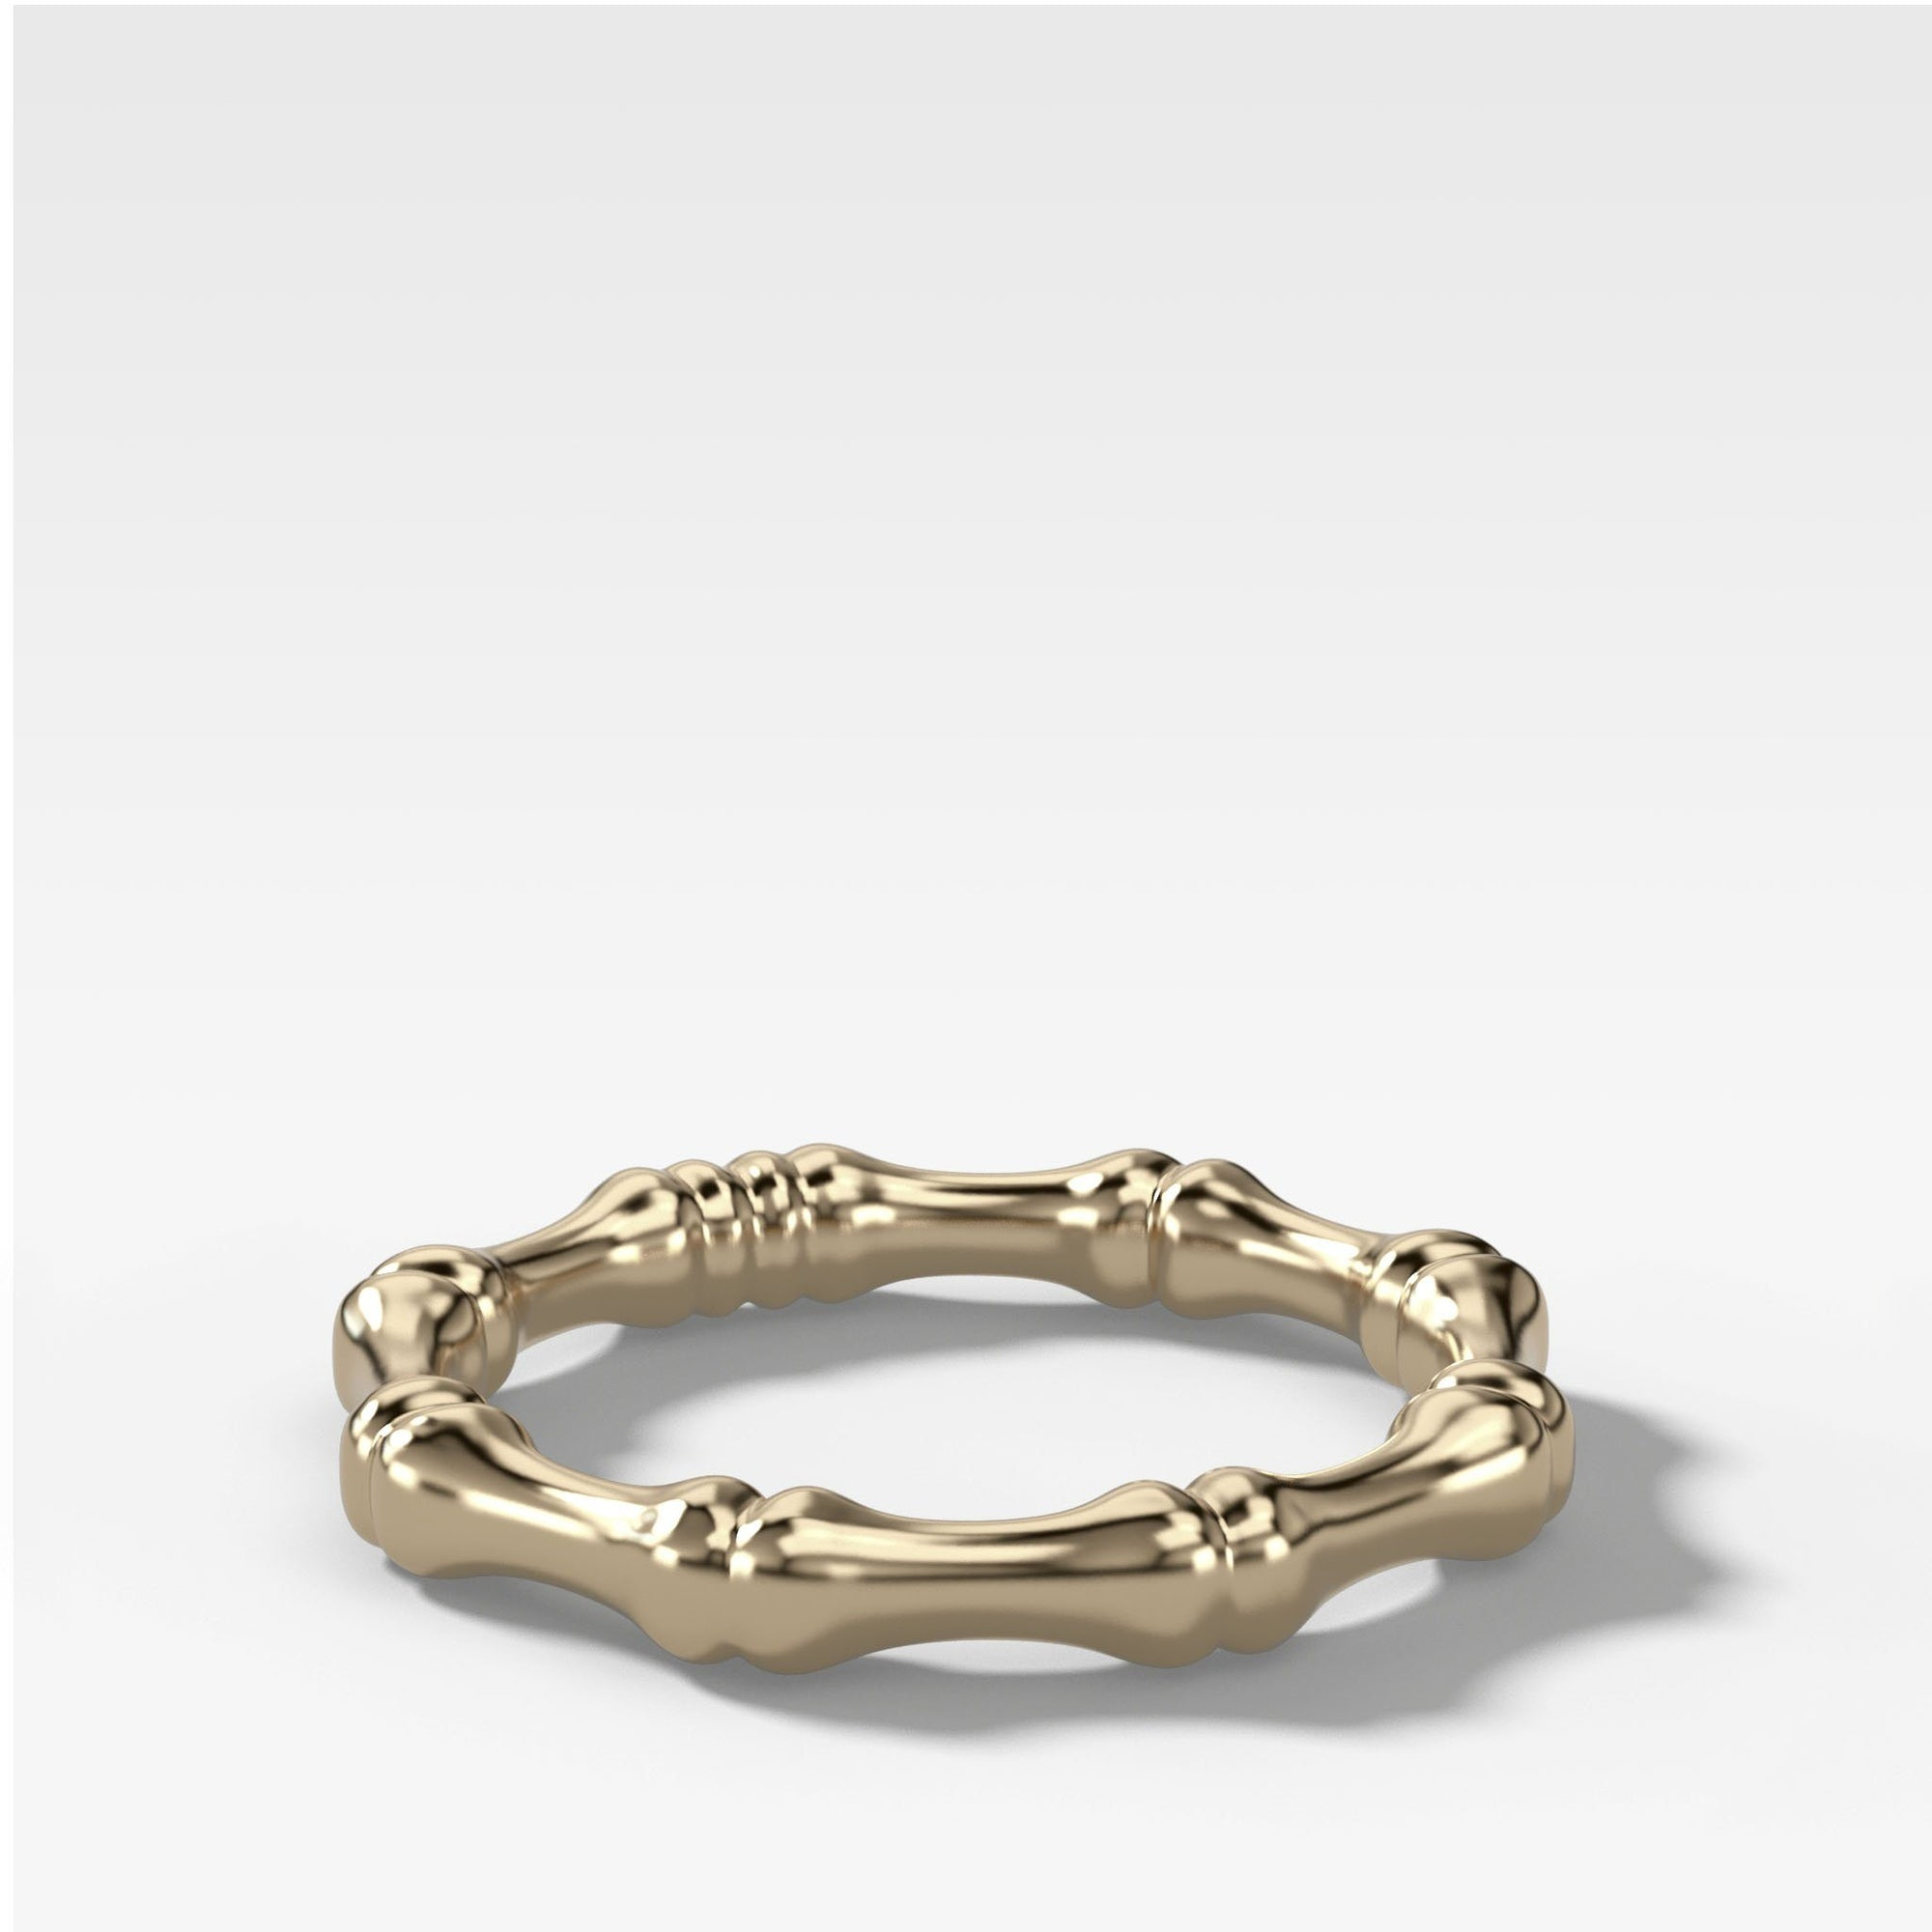 Bare Bones Stacker (3mm) Band in Yellow Gold by Good Stone